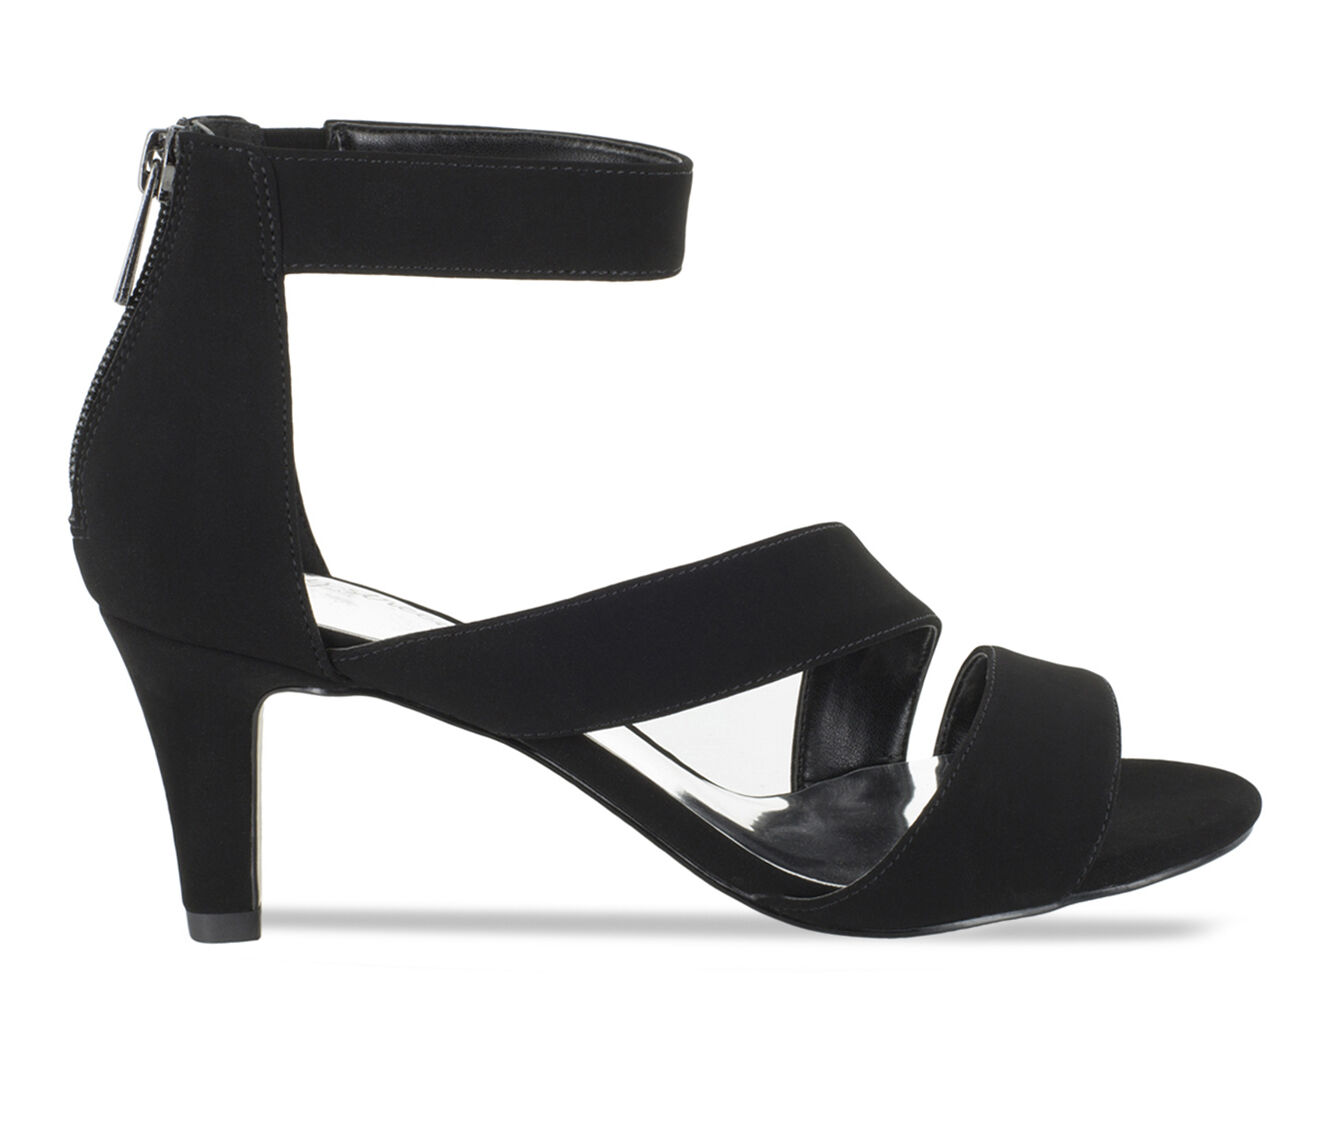 Women's Easy Street Maxi Strappy Heeled Dress Sandals Black Lamy